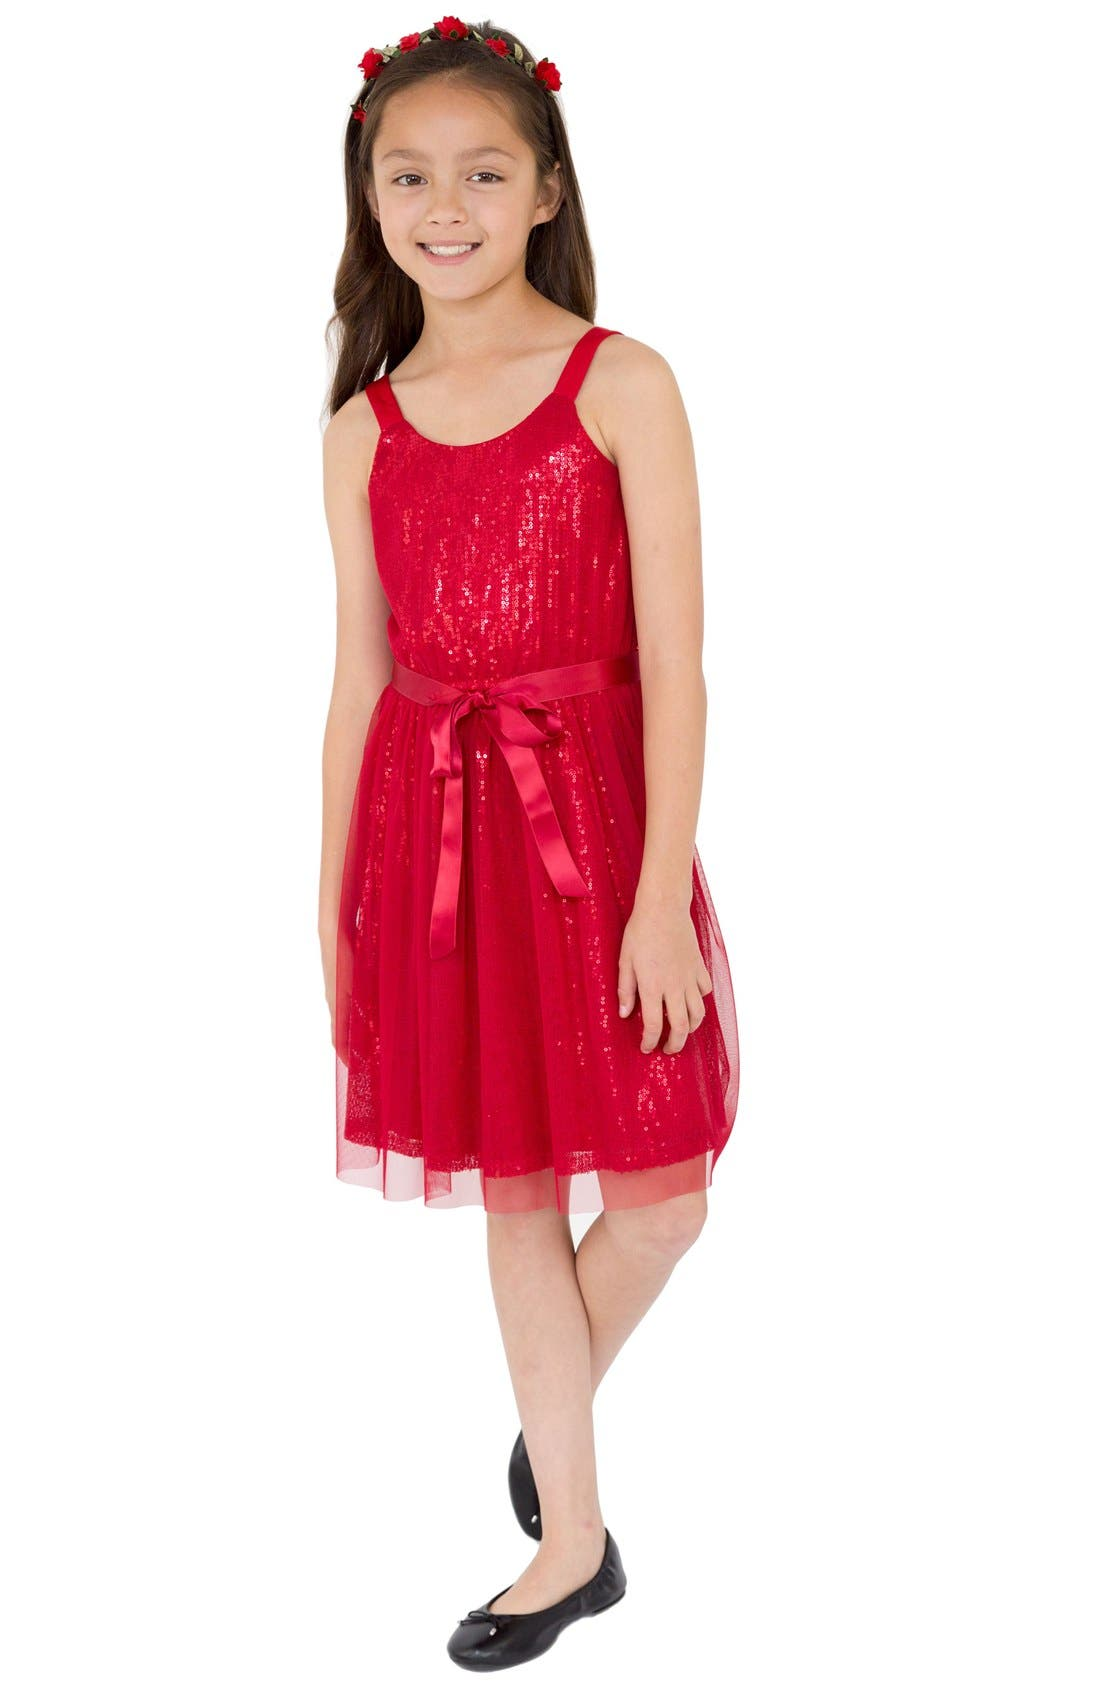 BLUSH BY US ANGELS Sequin Tulle Dress